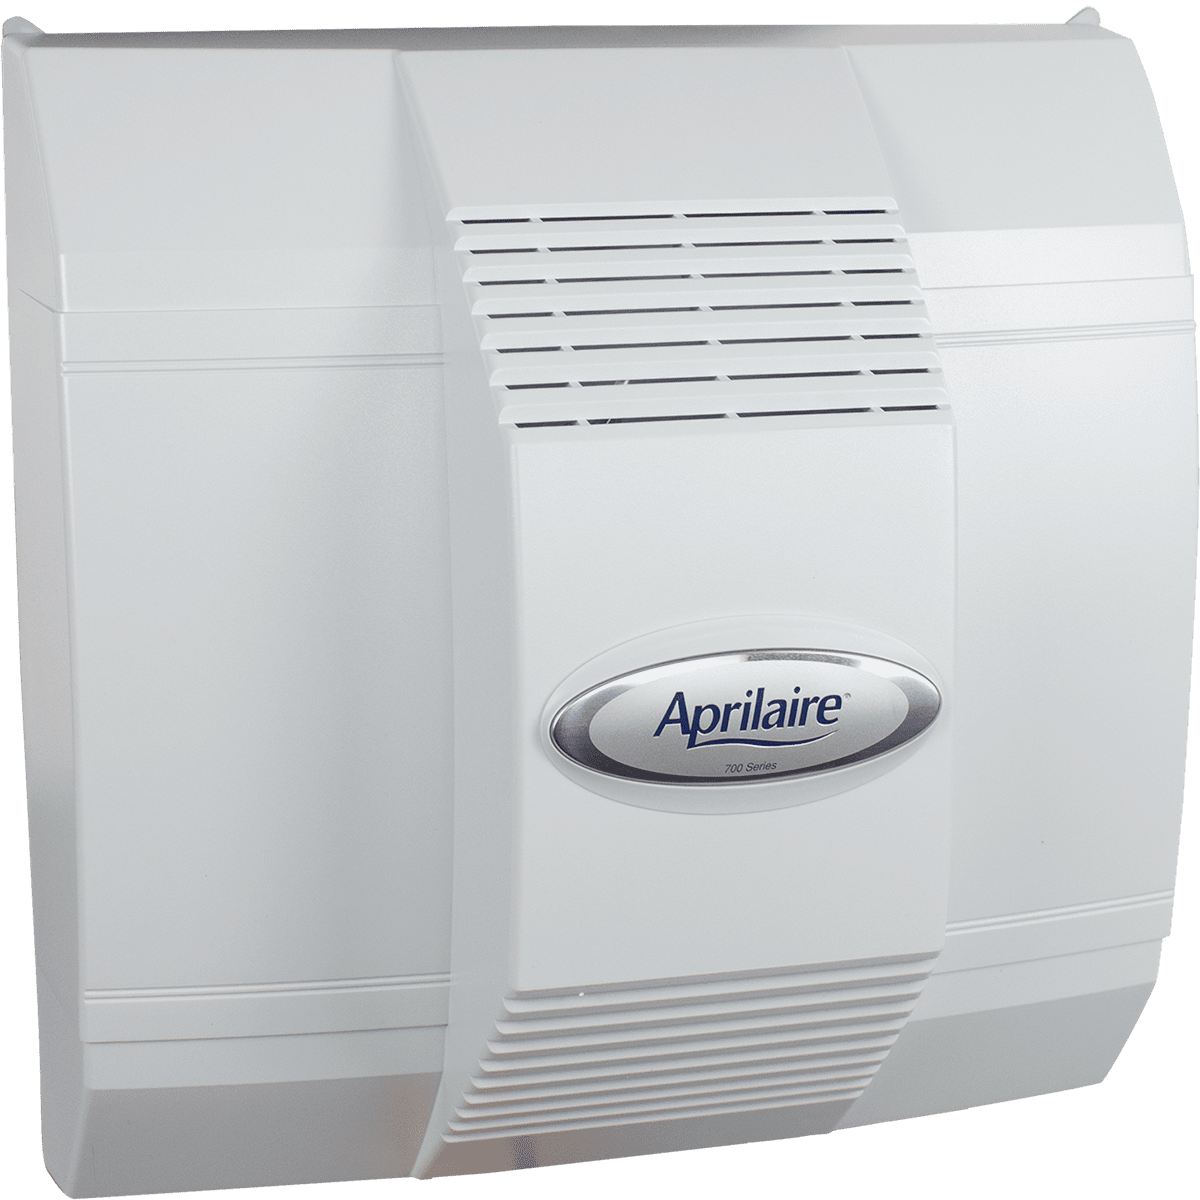 Aprilaire Model 700 Whole House Humidifiers Sylvane #44475D